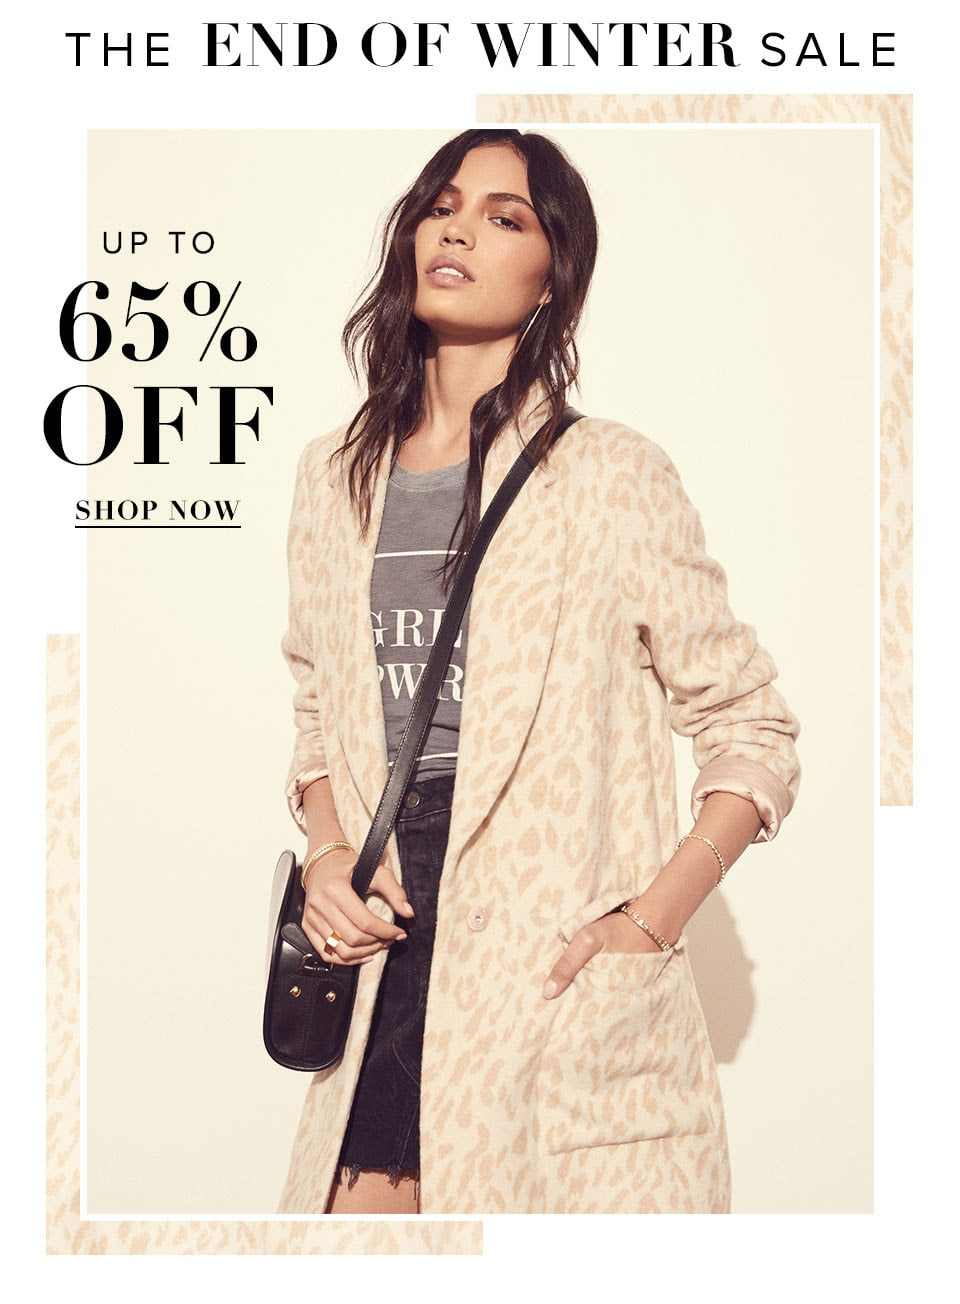 The End of Winter Sale. Up to 65% Off. Shop now.